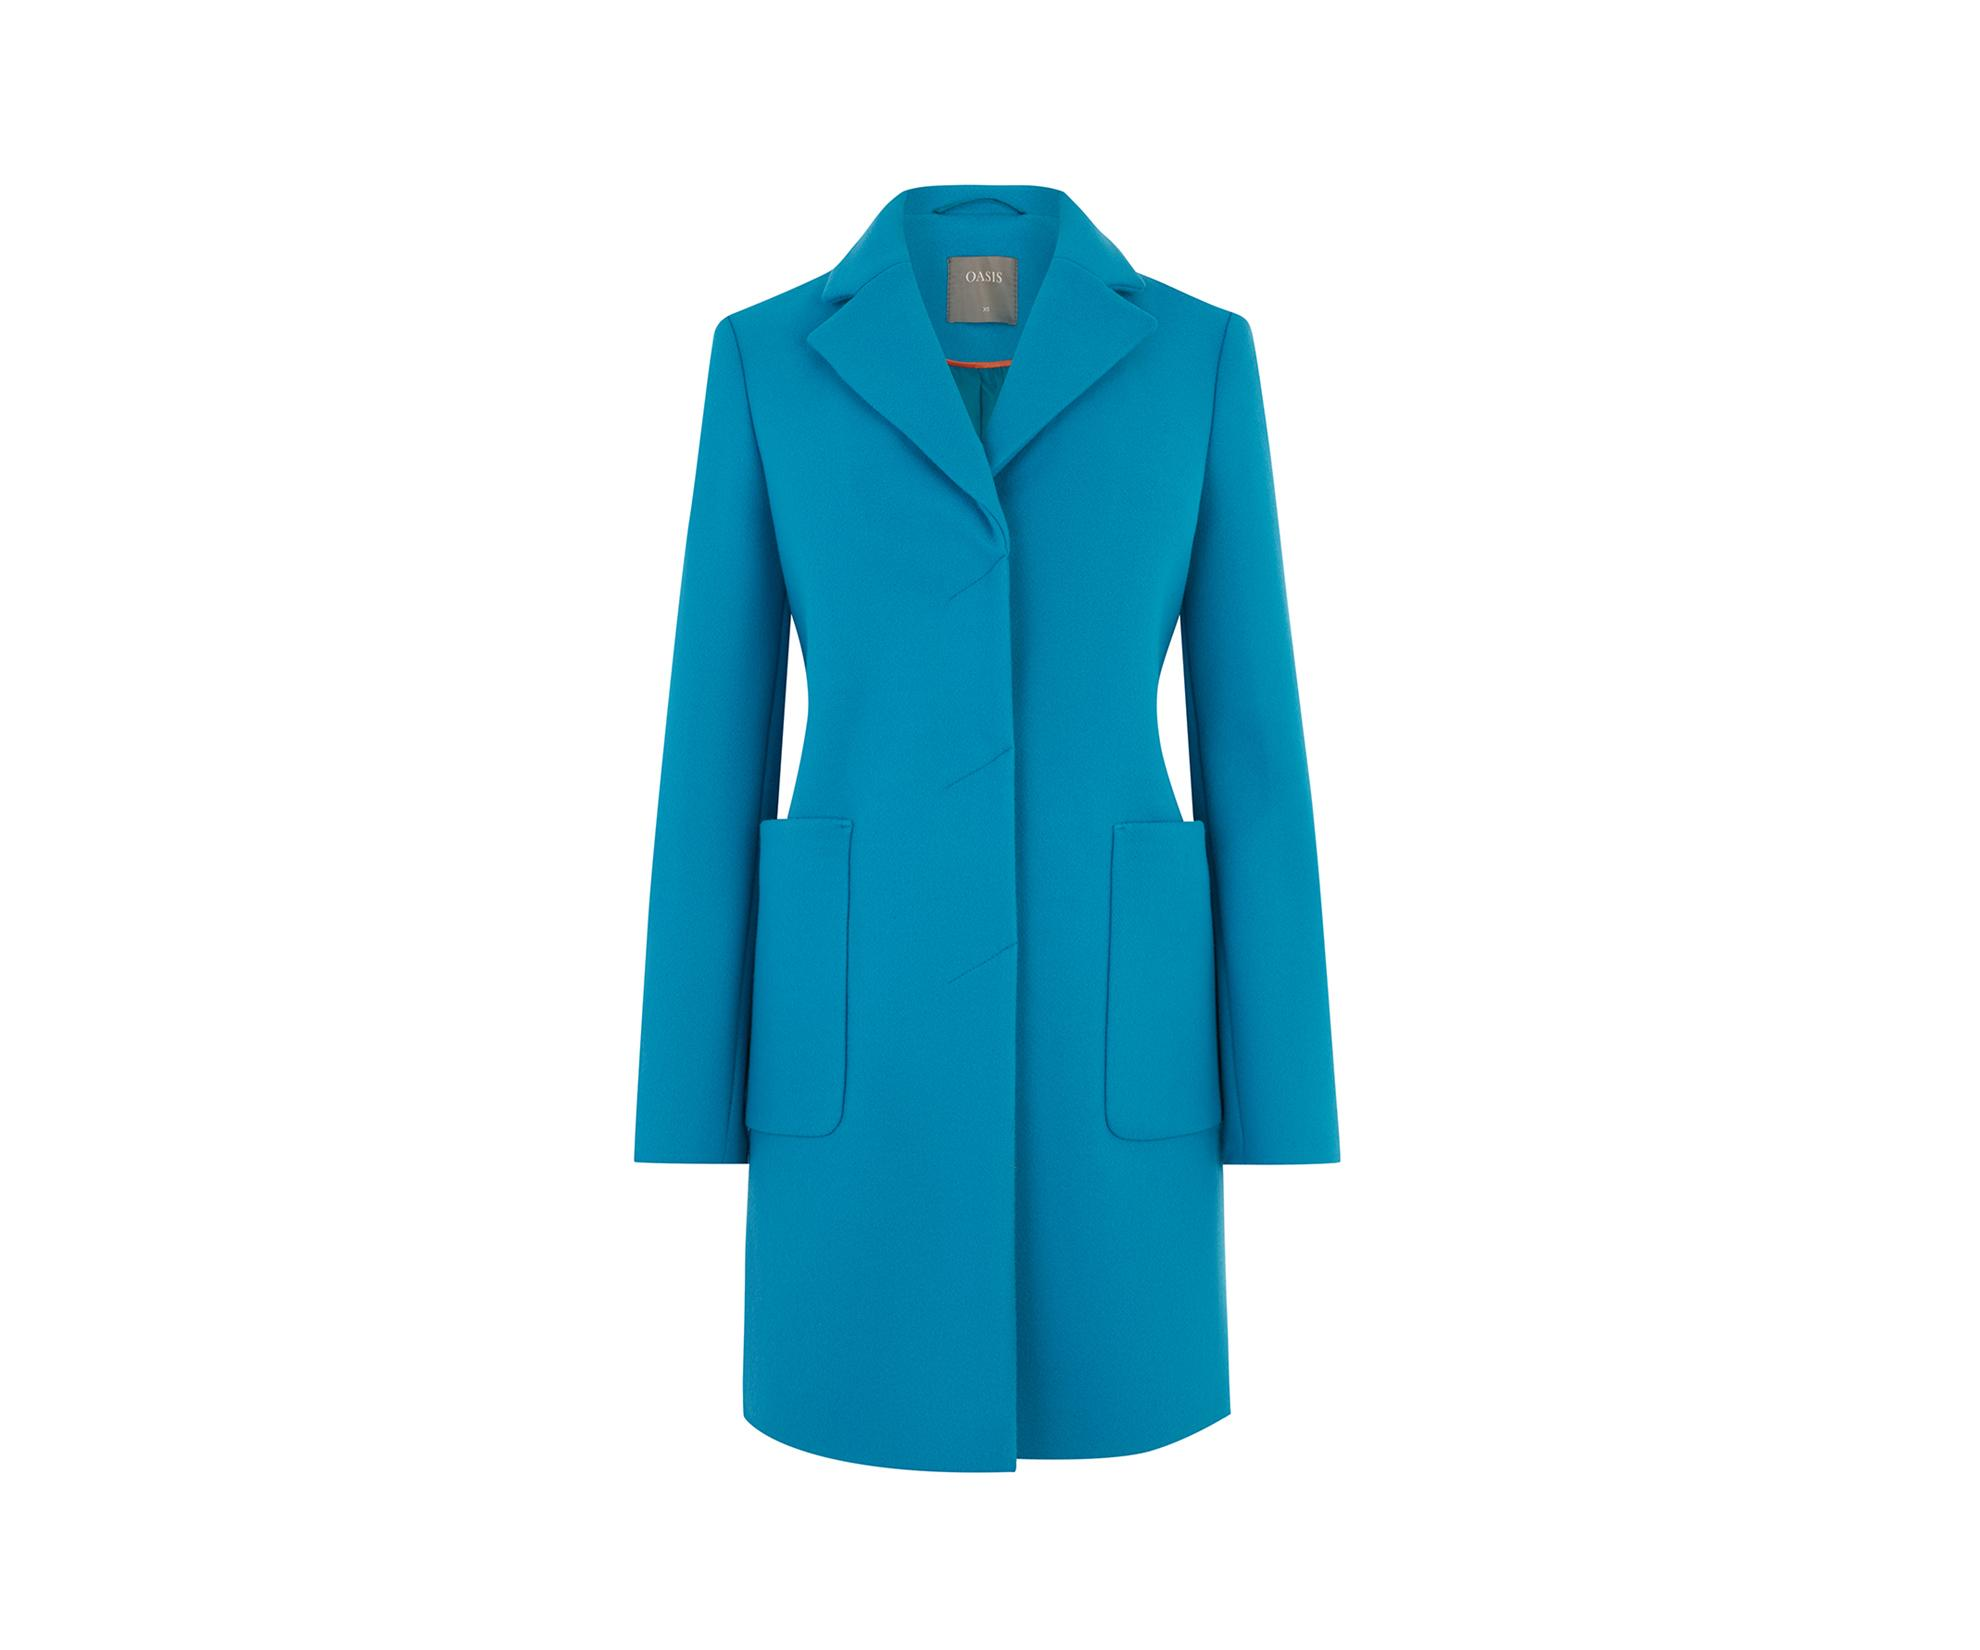 b6e8521ce577 Oasis Teal 'libby' Coat in Blue - Save 20% - Lyst